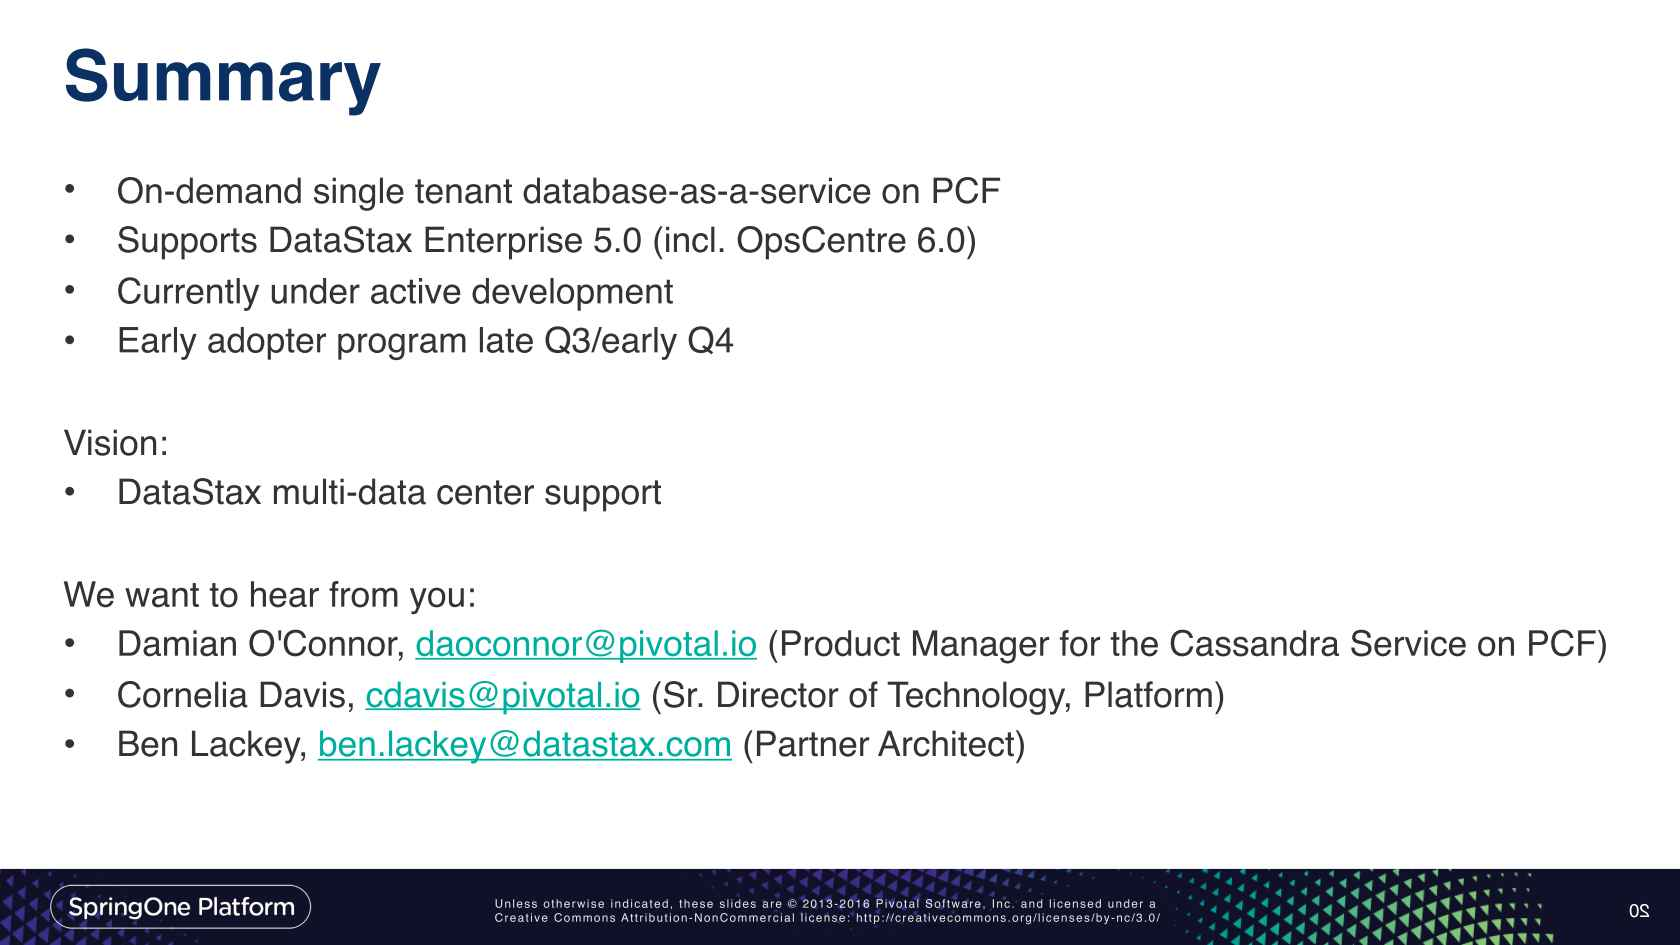 Cassandra and DataStax Enterprise on PCF